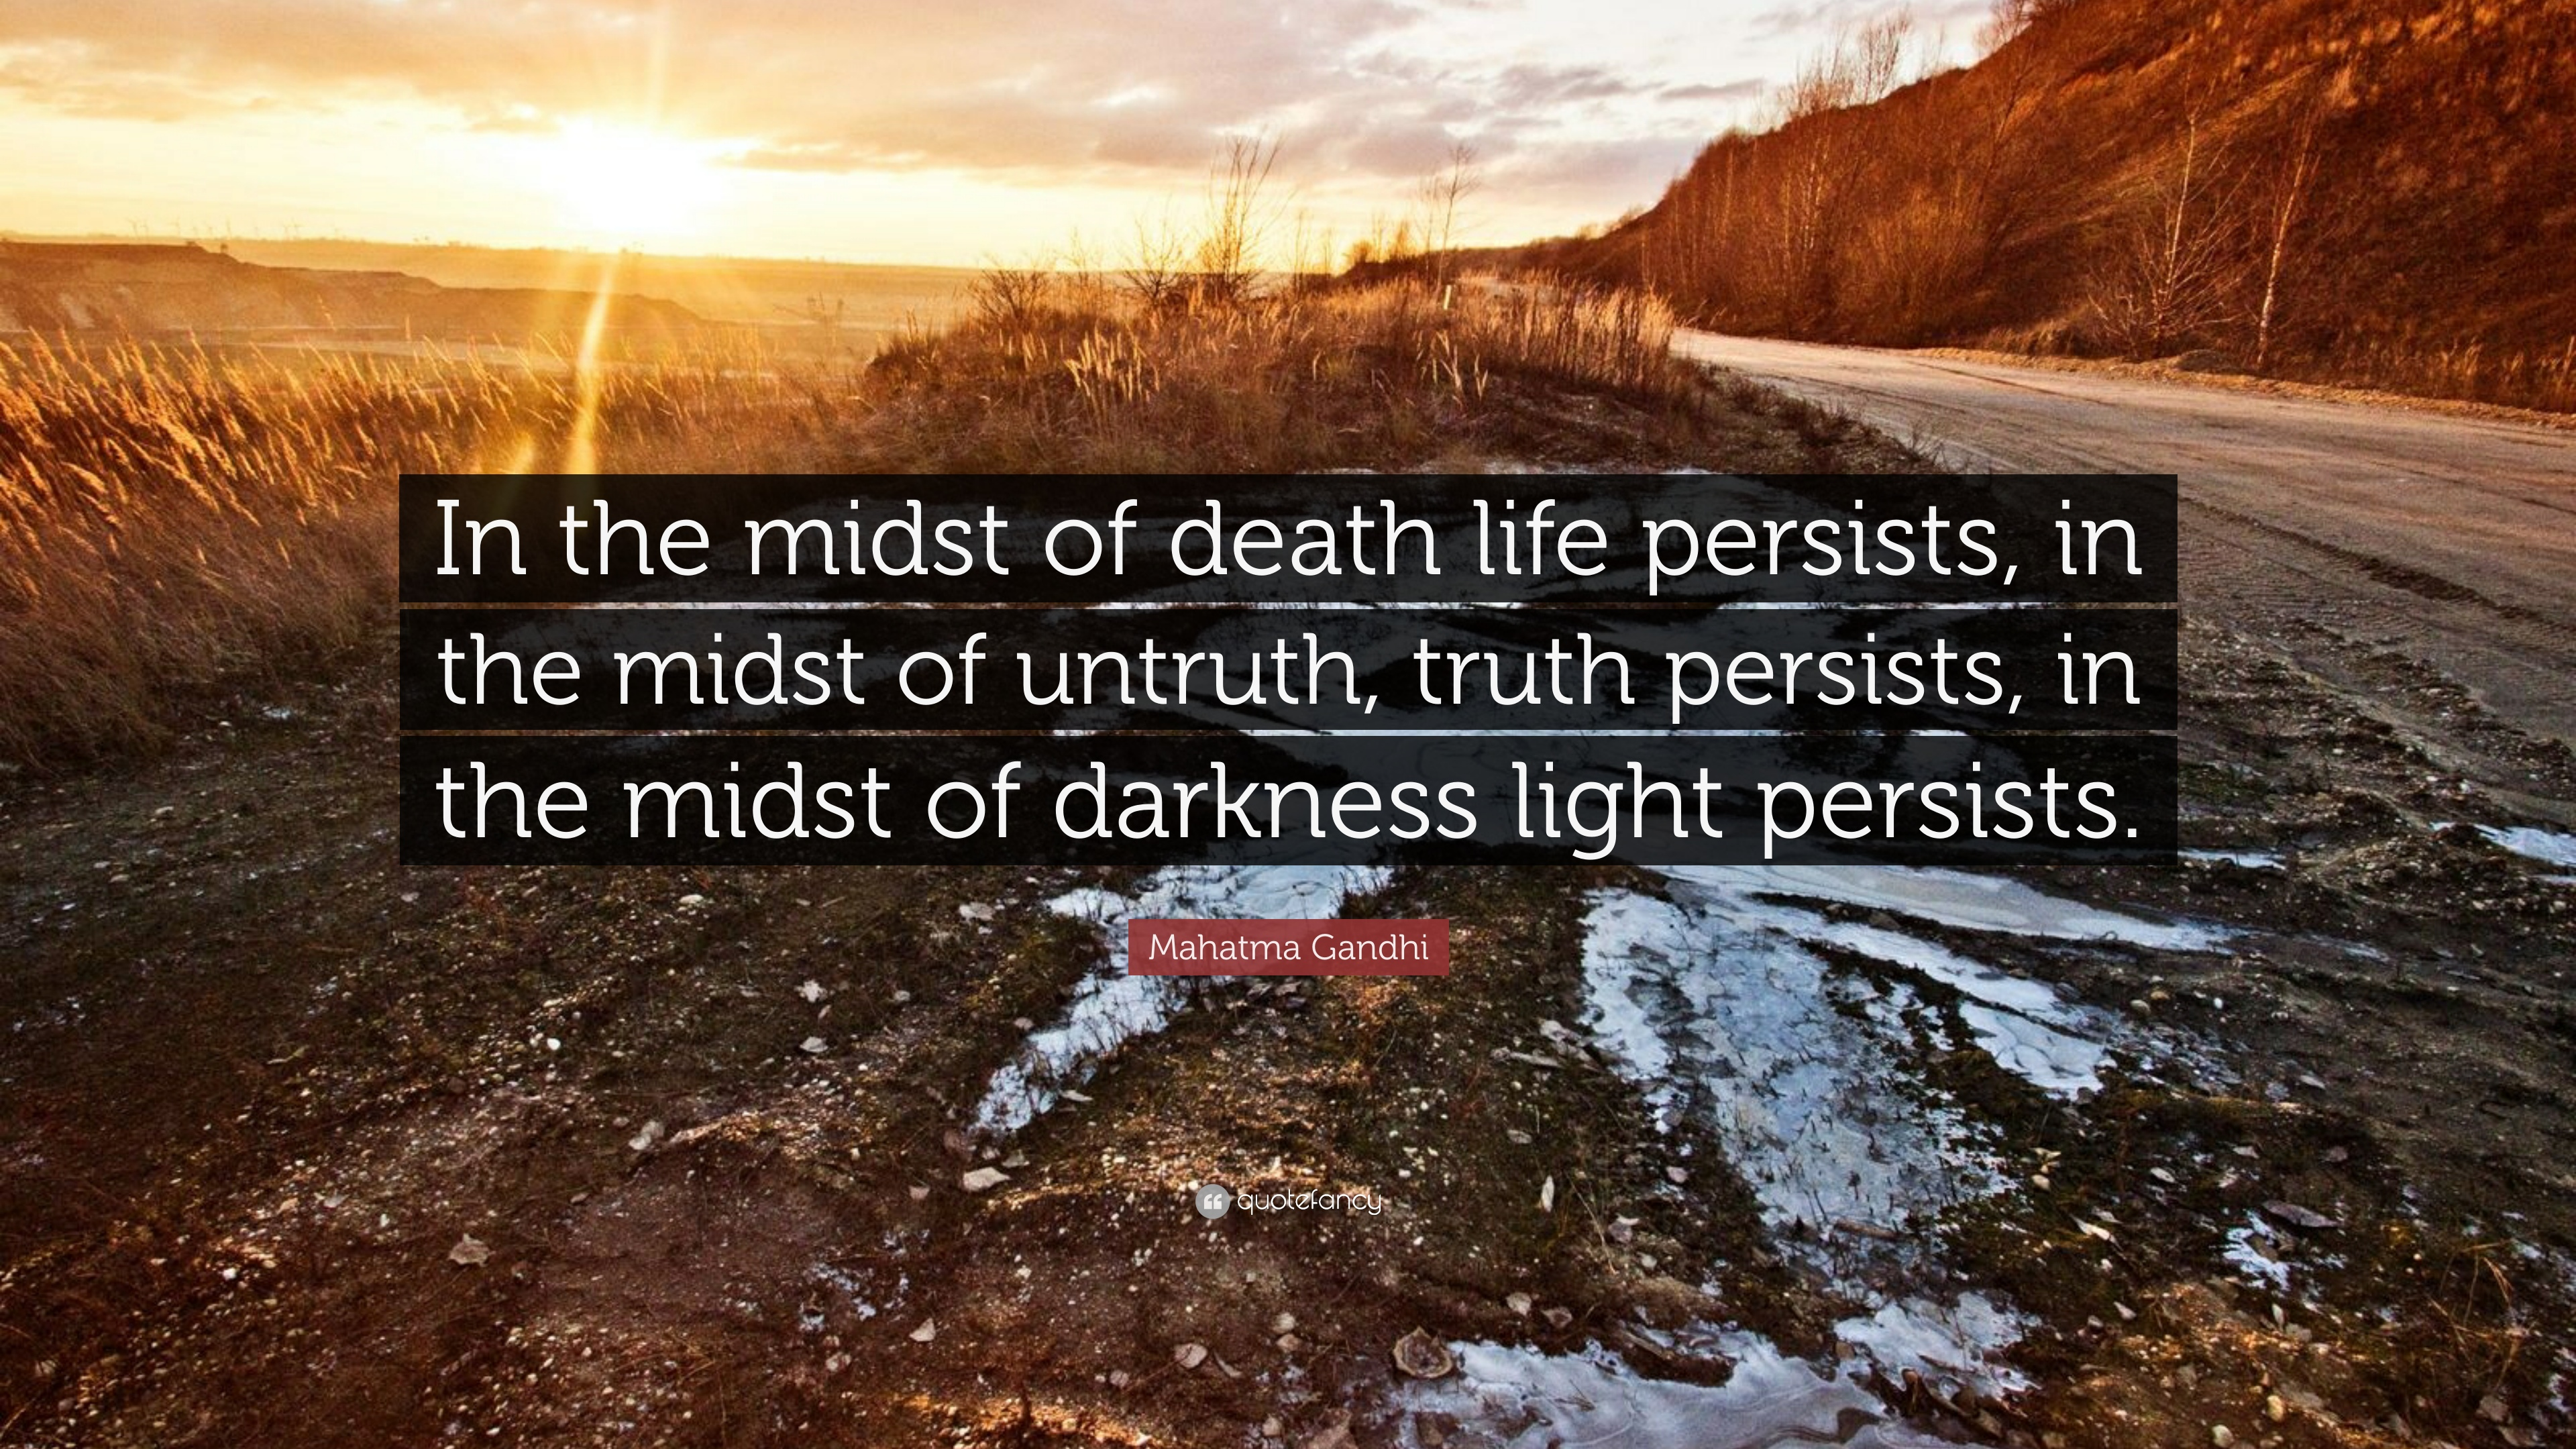 Mahatma Gandhi Quote In The Midst Of Death Life Persists In The